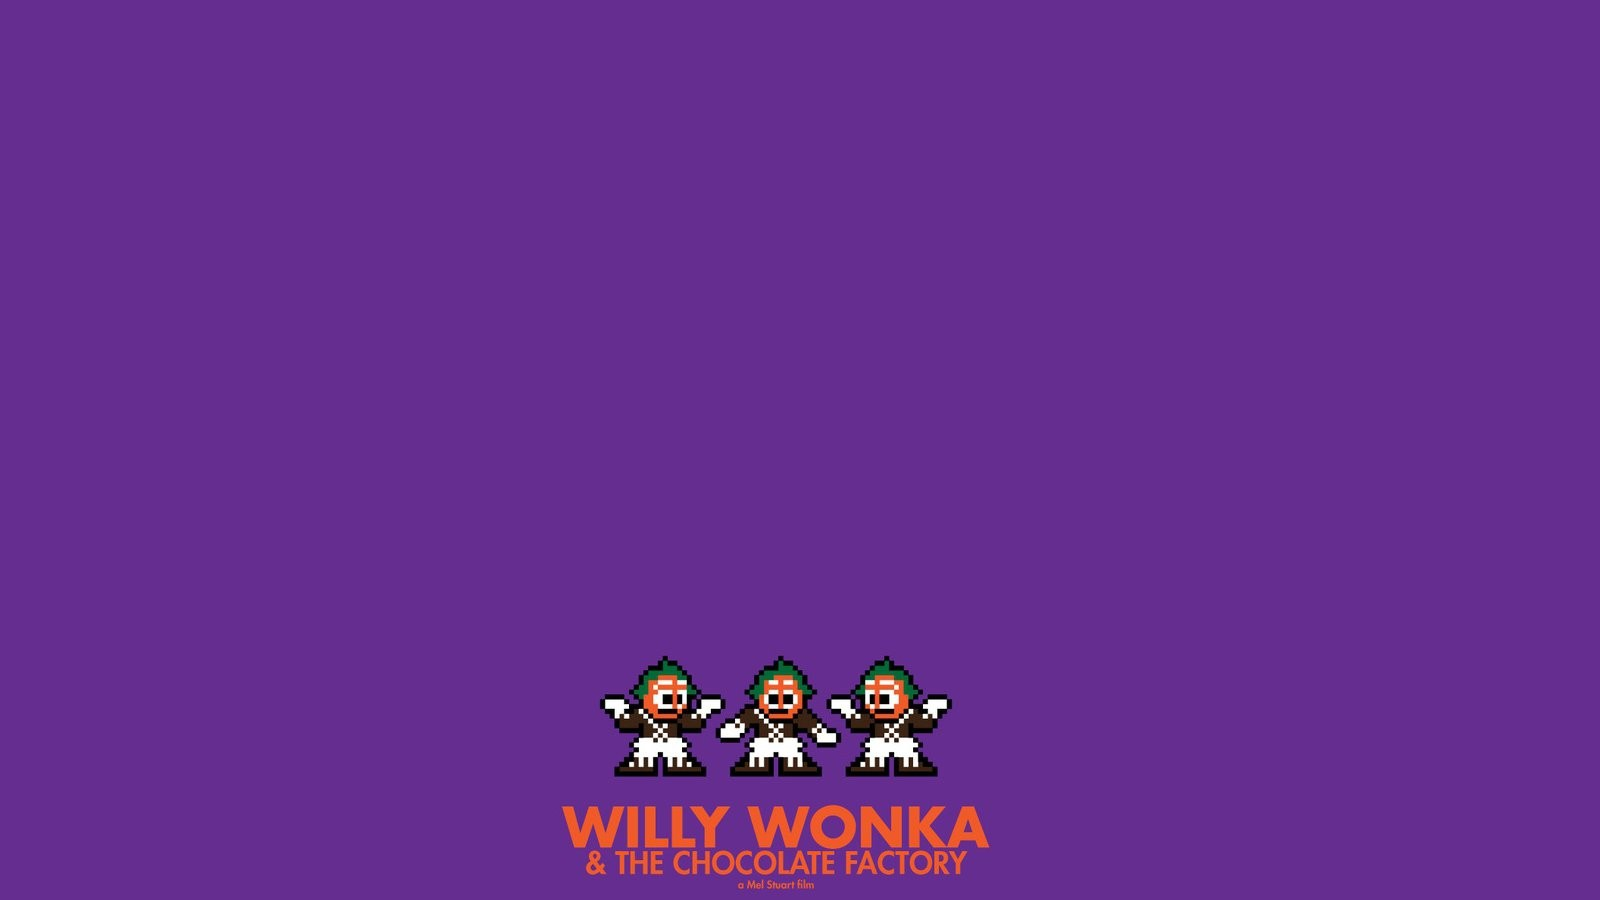 posters Willy Wonka chocolate factory 8 bit wallpaper background 1600x900